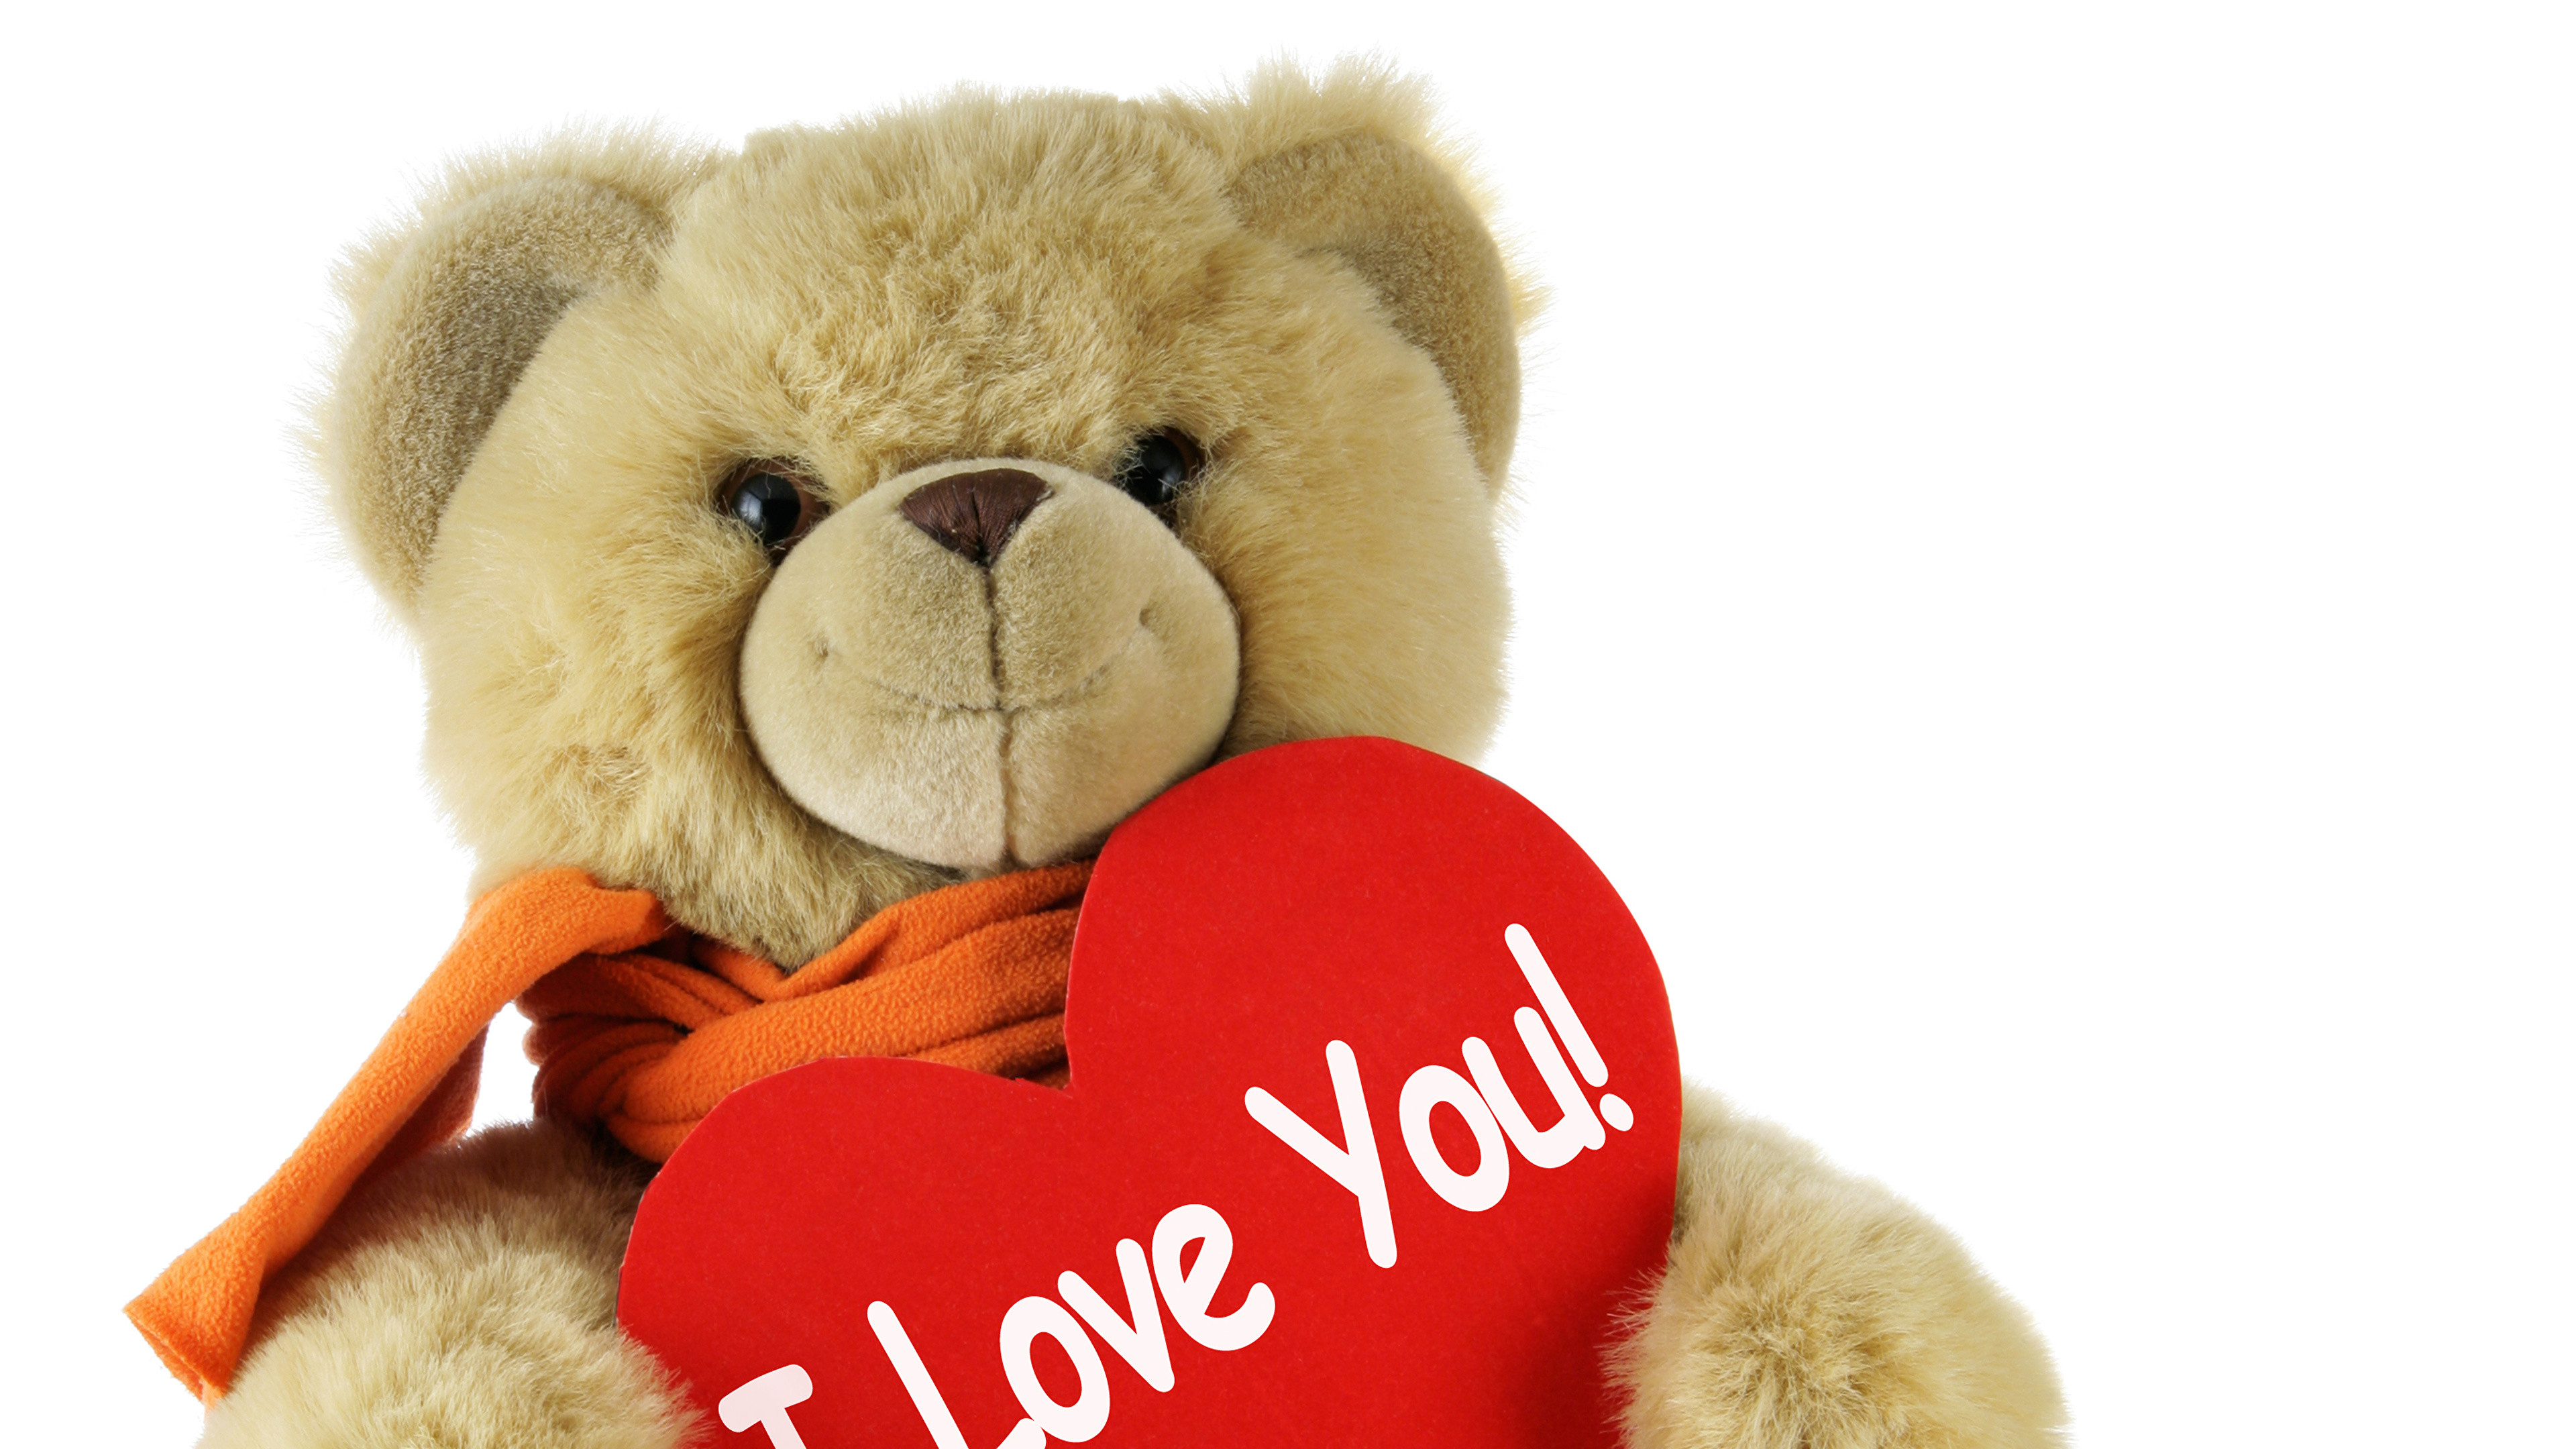 Wallpaper Valentine's Day English Heart Love Teddy bear White background  3840×2160